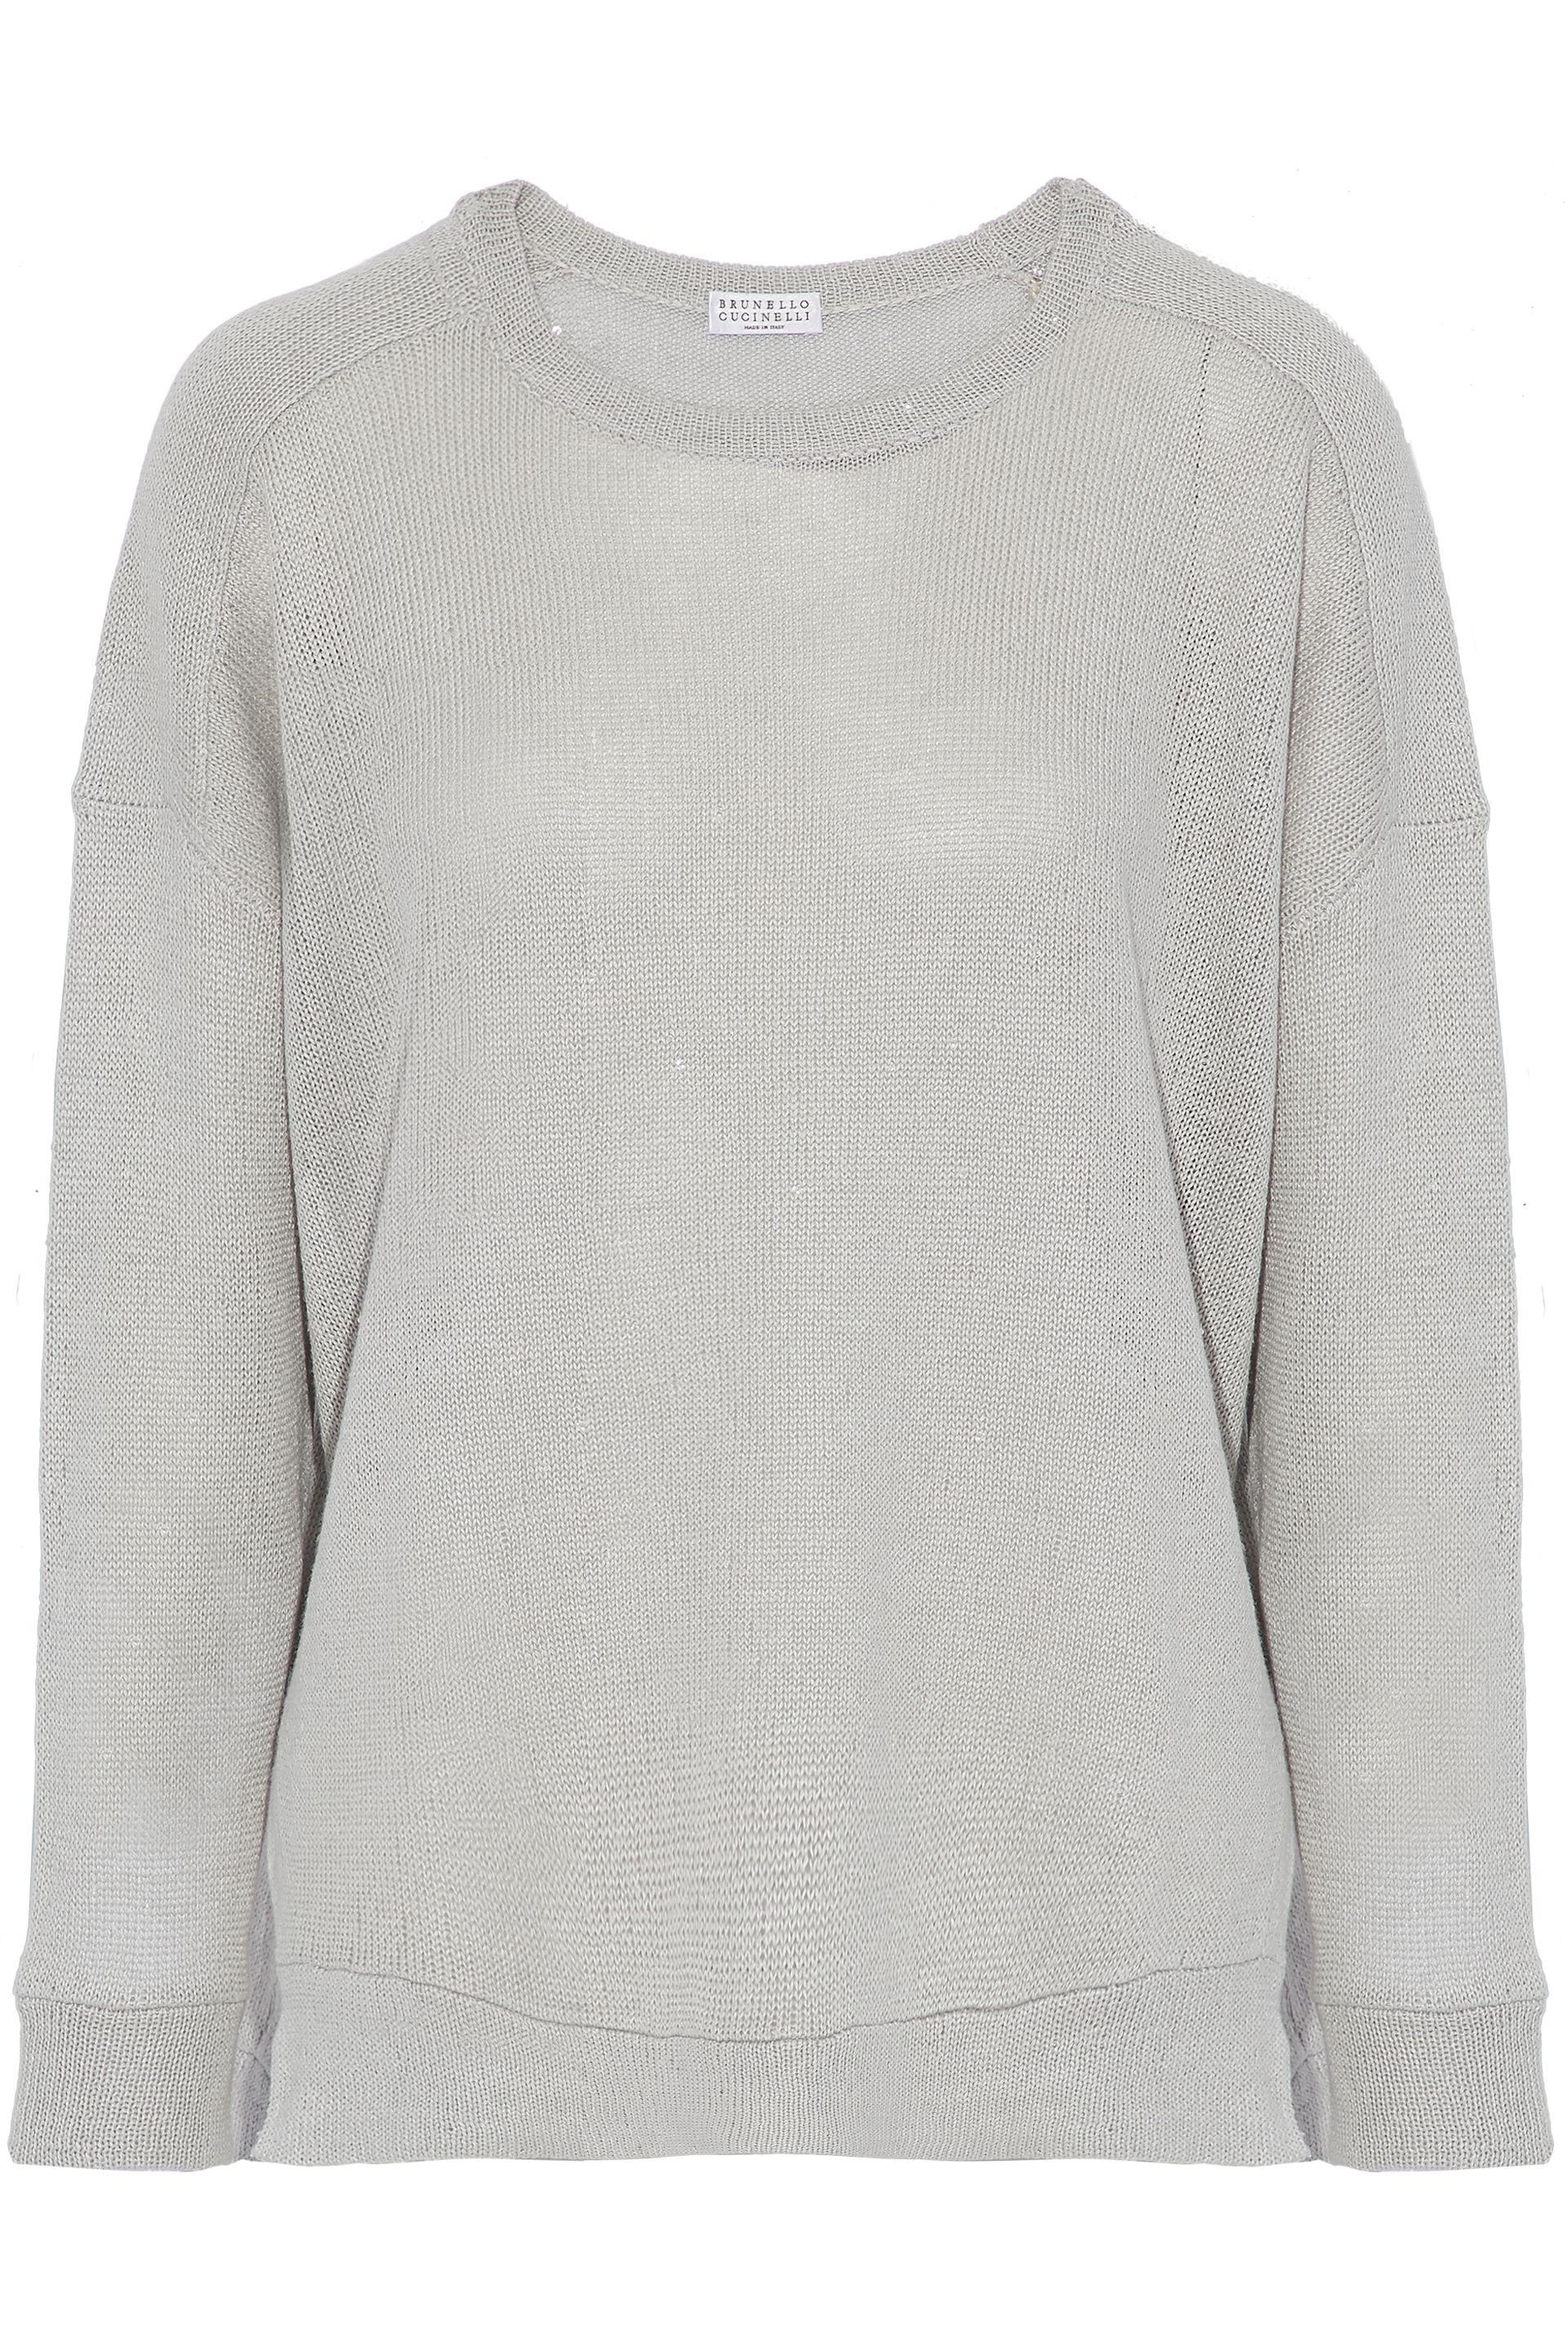 Looking For Cheap Sale Official Site Brunello Cucinelli Woman Sequin-embellished Linen And Silk-blend Sweater Light Gray Size M Brunello Cucinelli Big Sale Online bjg6Gezq